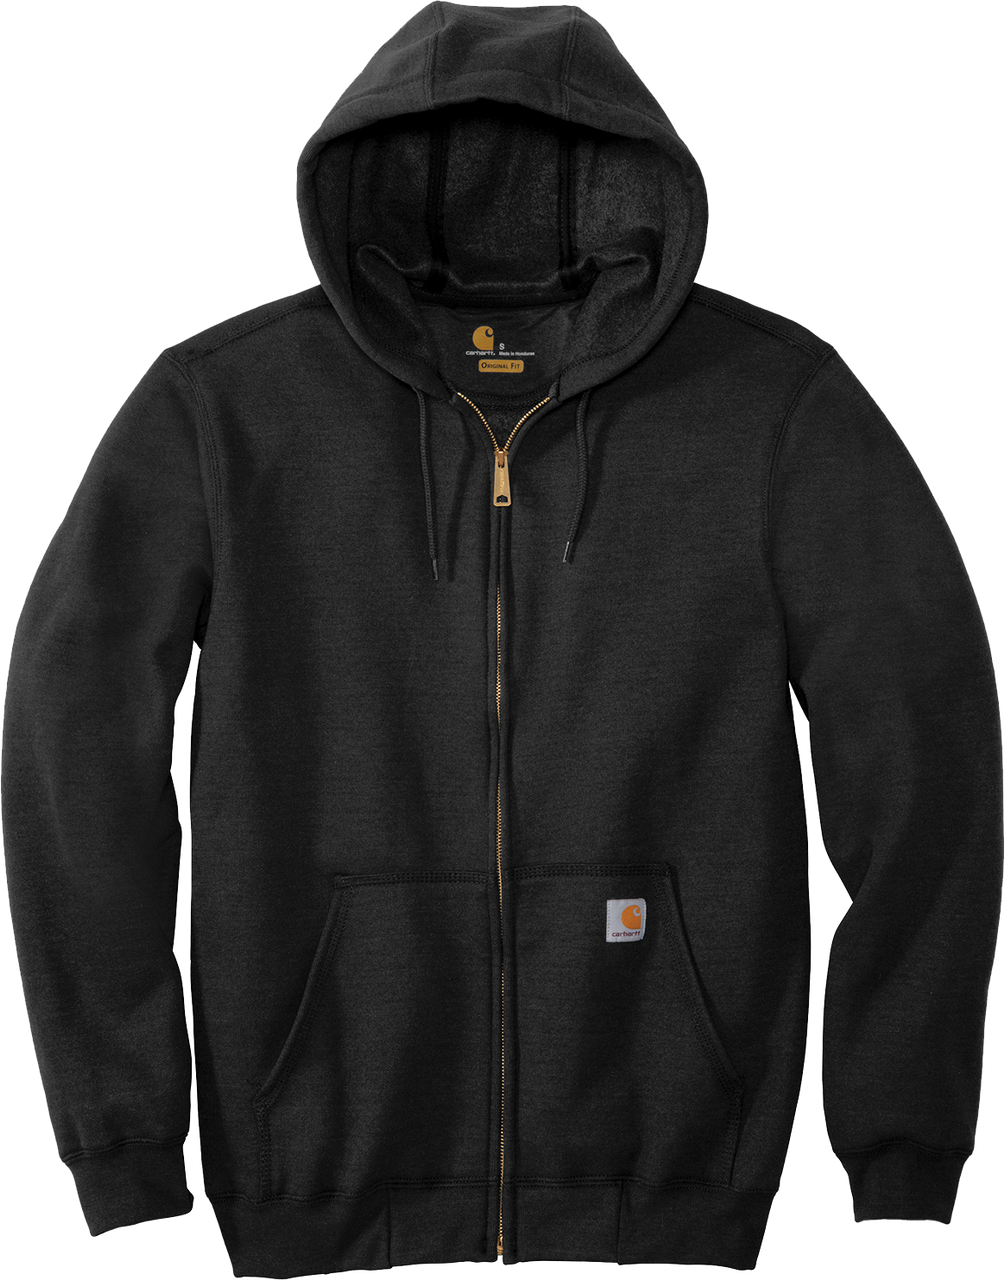 Black CTK122 Carhartt 10.5 oz Midweight Hooded Full Zip Sweatshirt